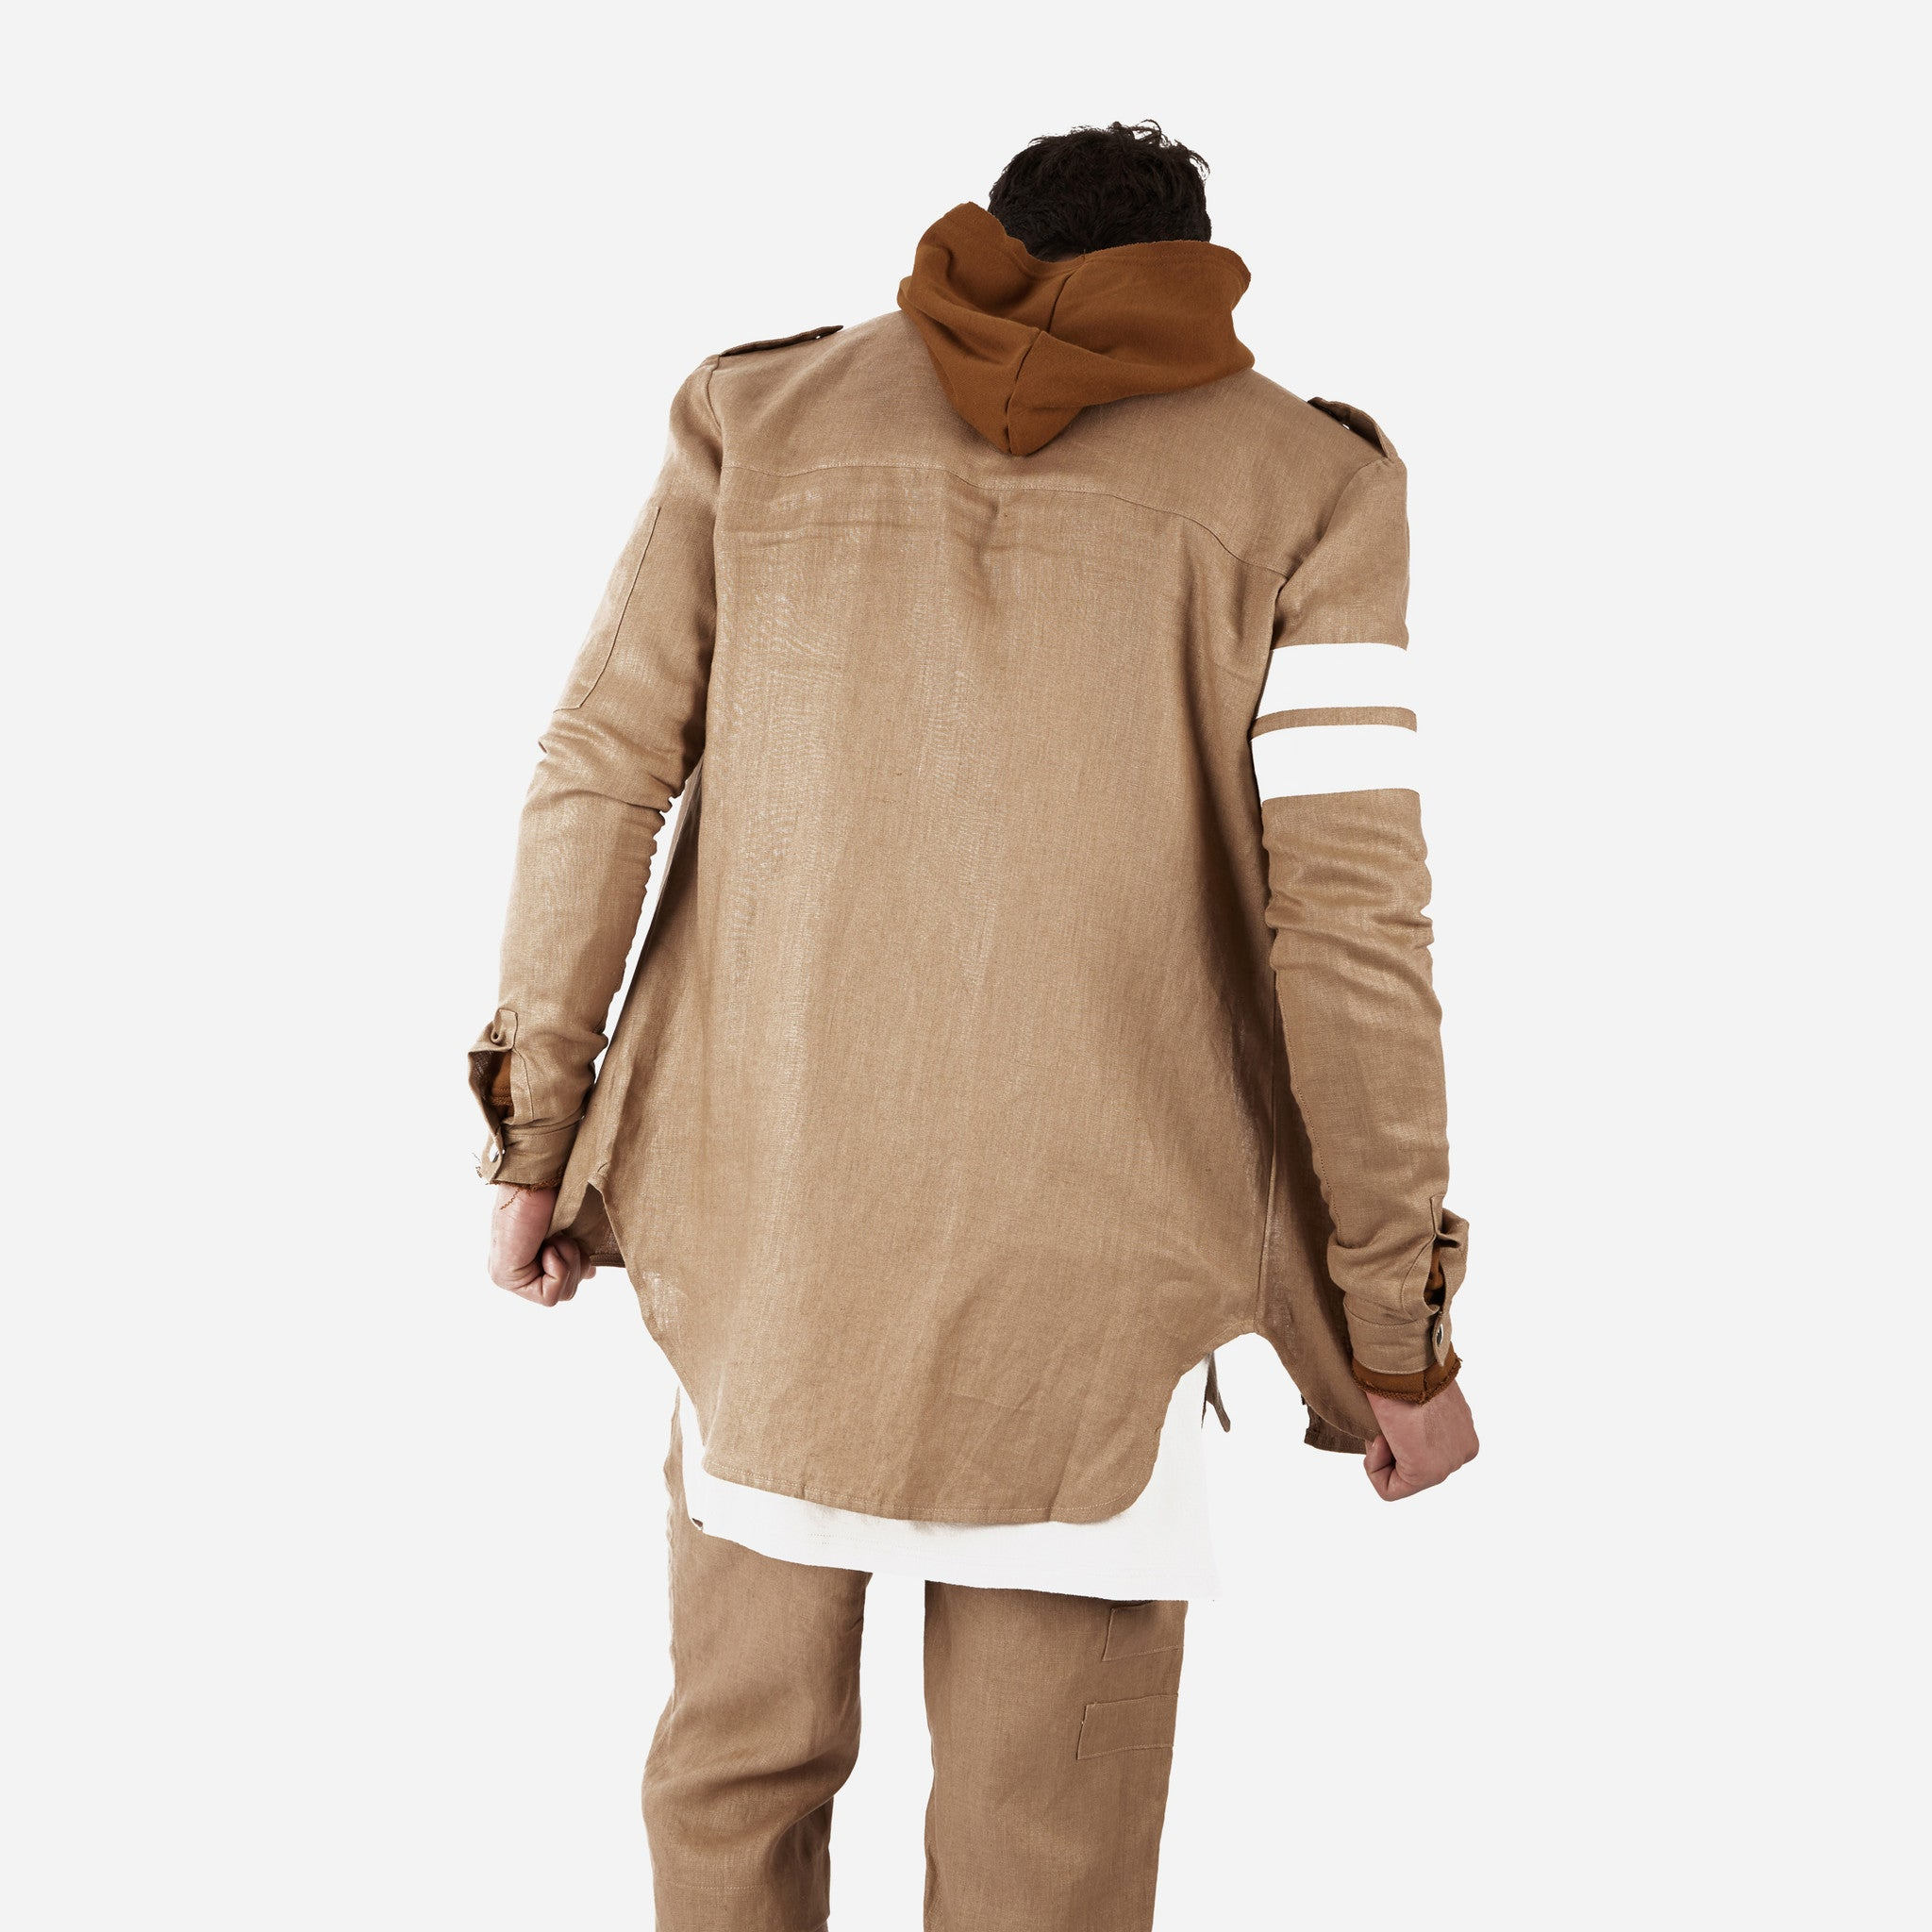 SH273 Exile Military Shirt - Tan - underated london - underatedco - 7